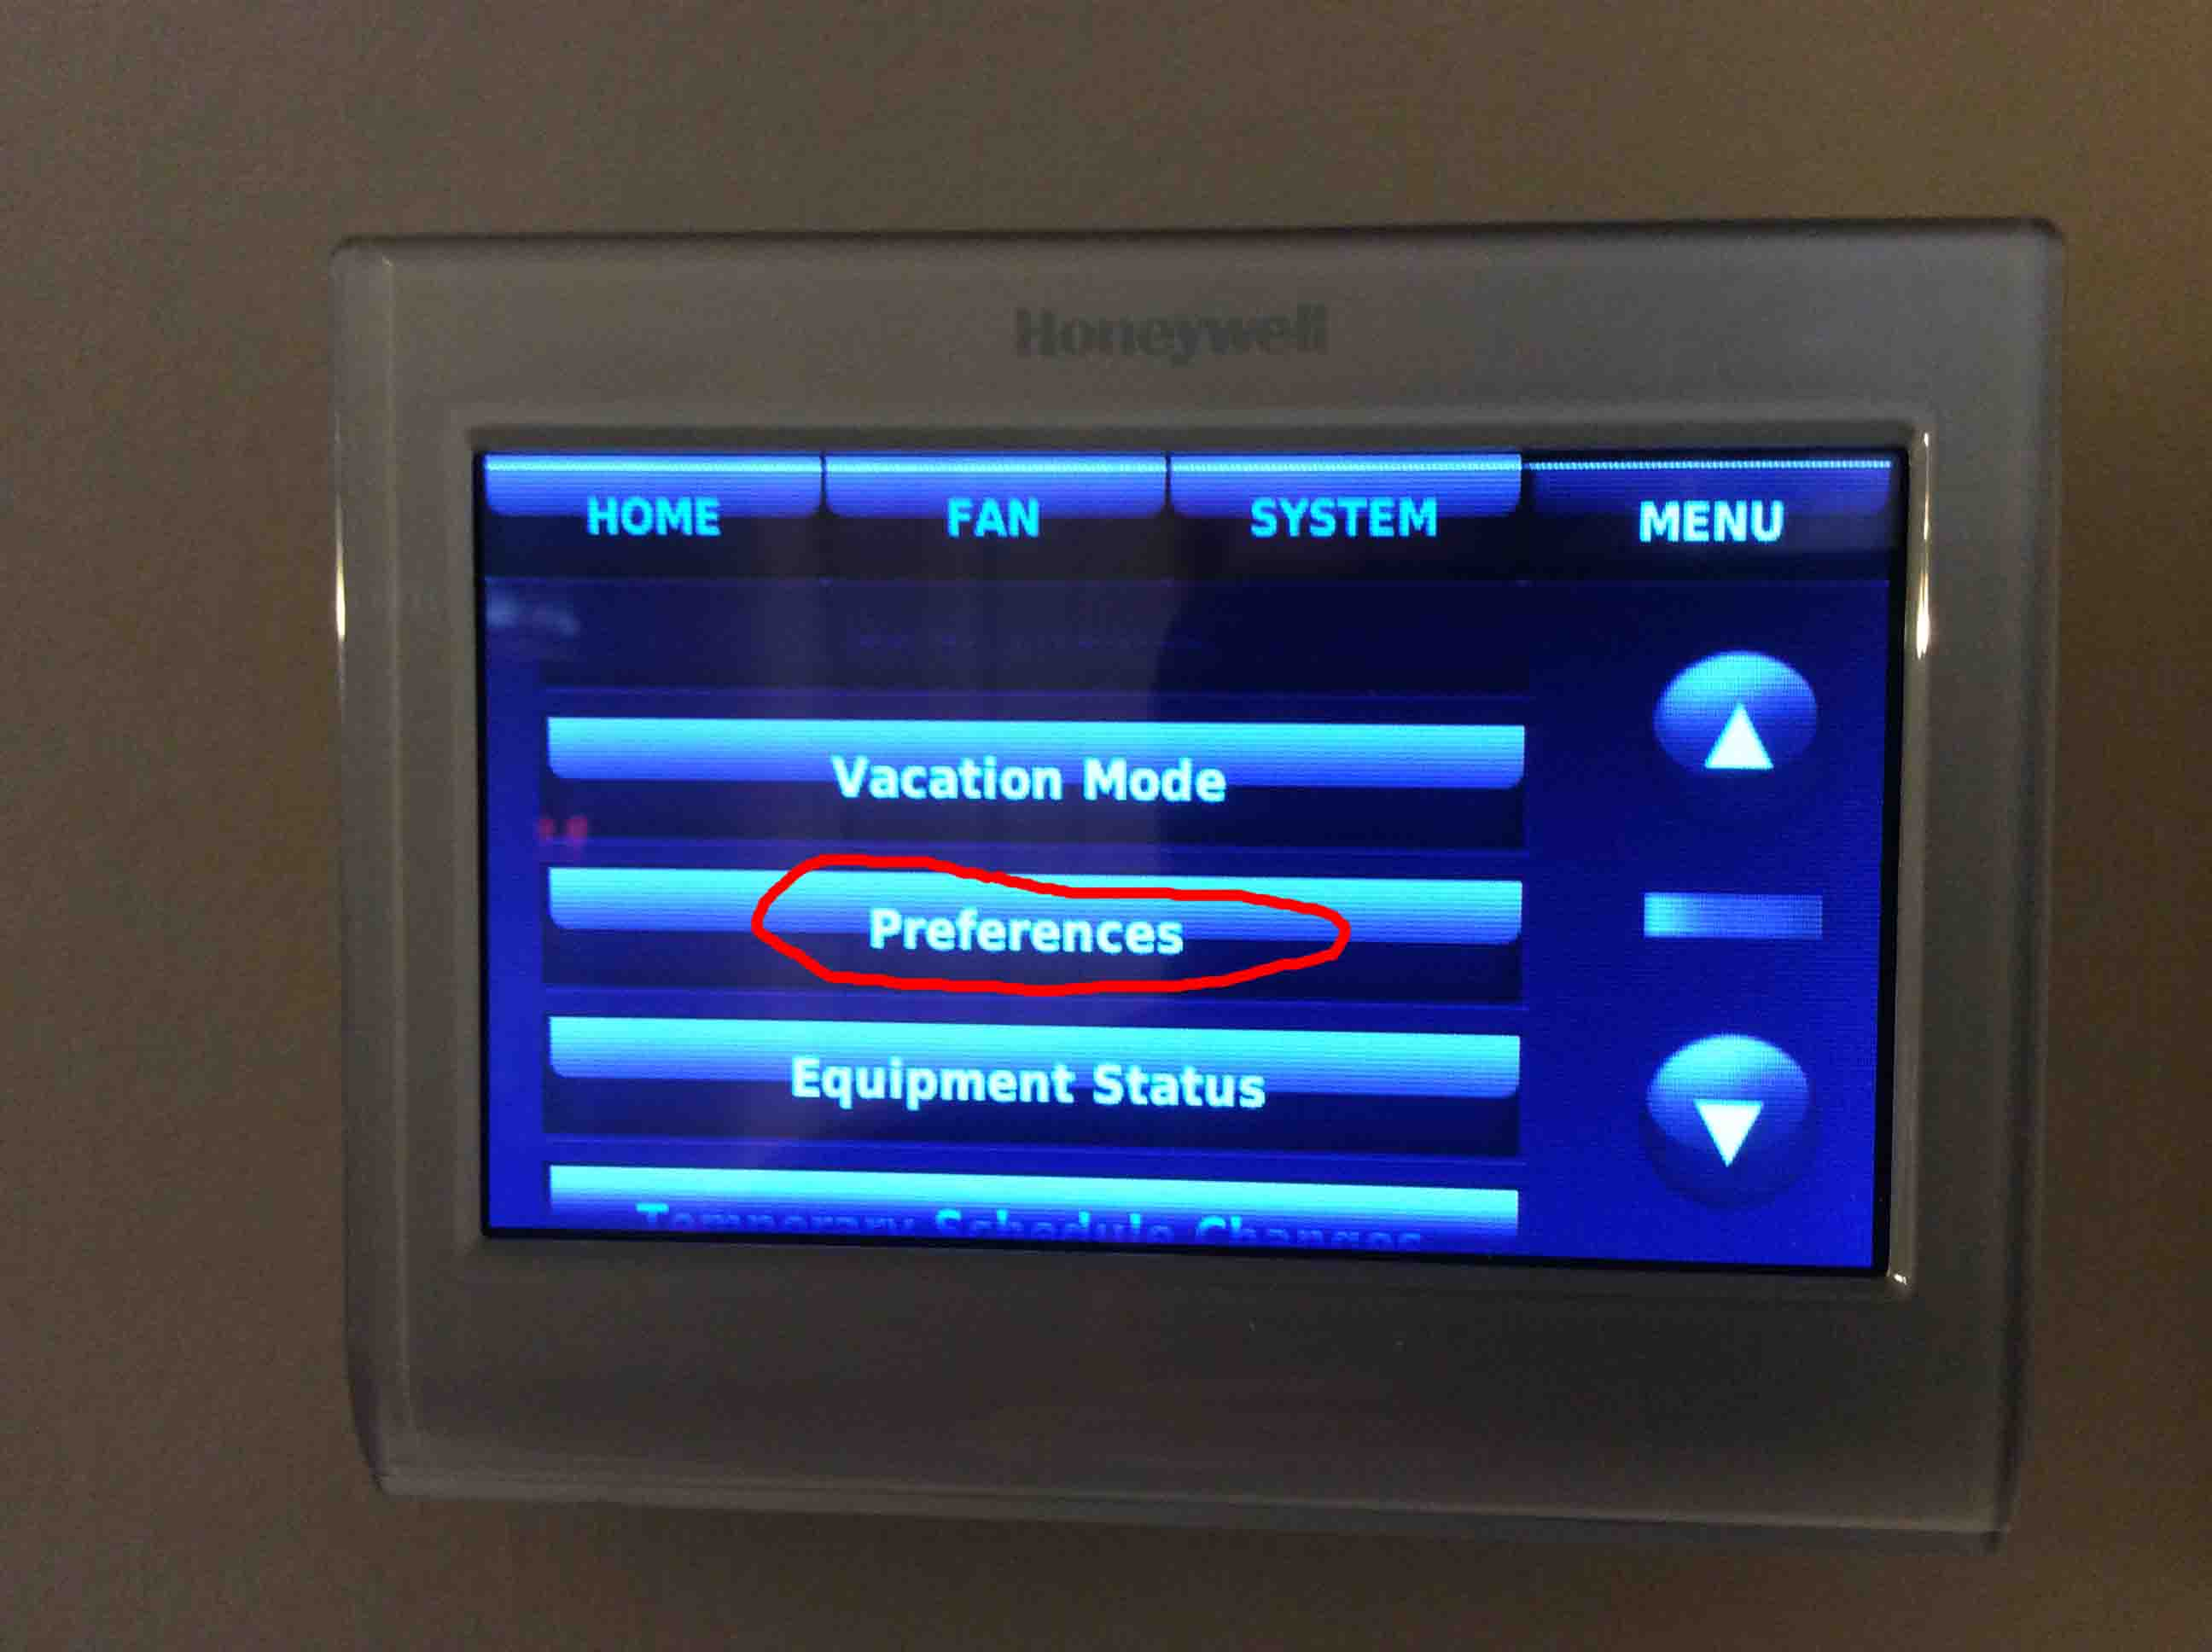 Reset Honeywell Touchscreen Thermostat, How To | Tom's Tek Stop